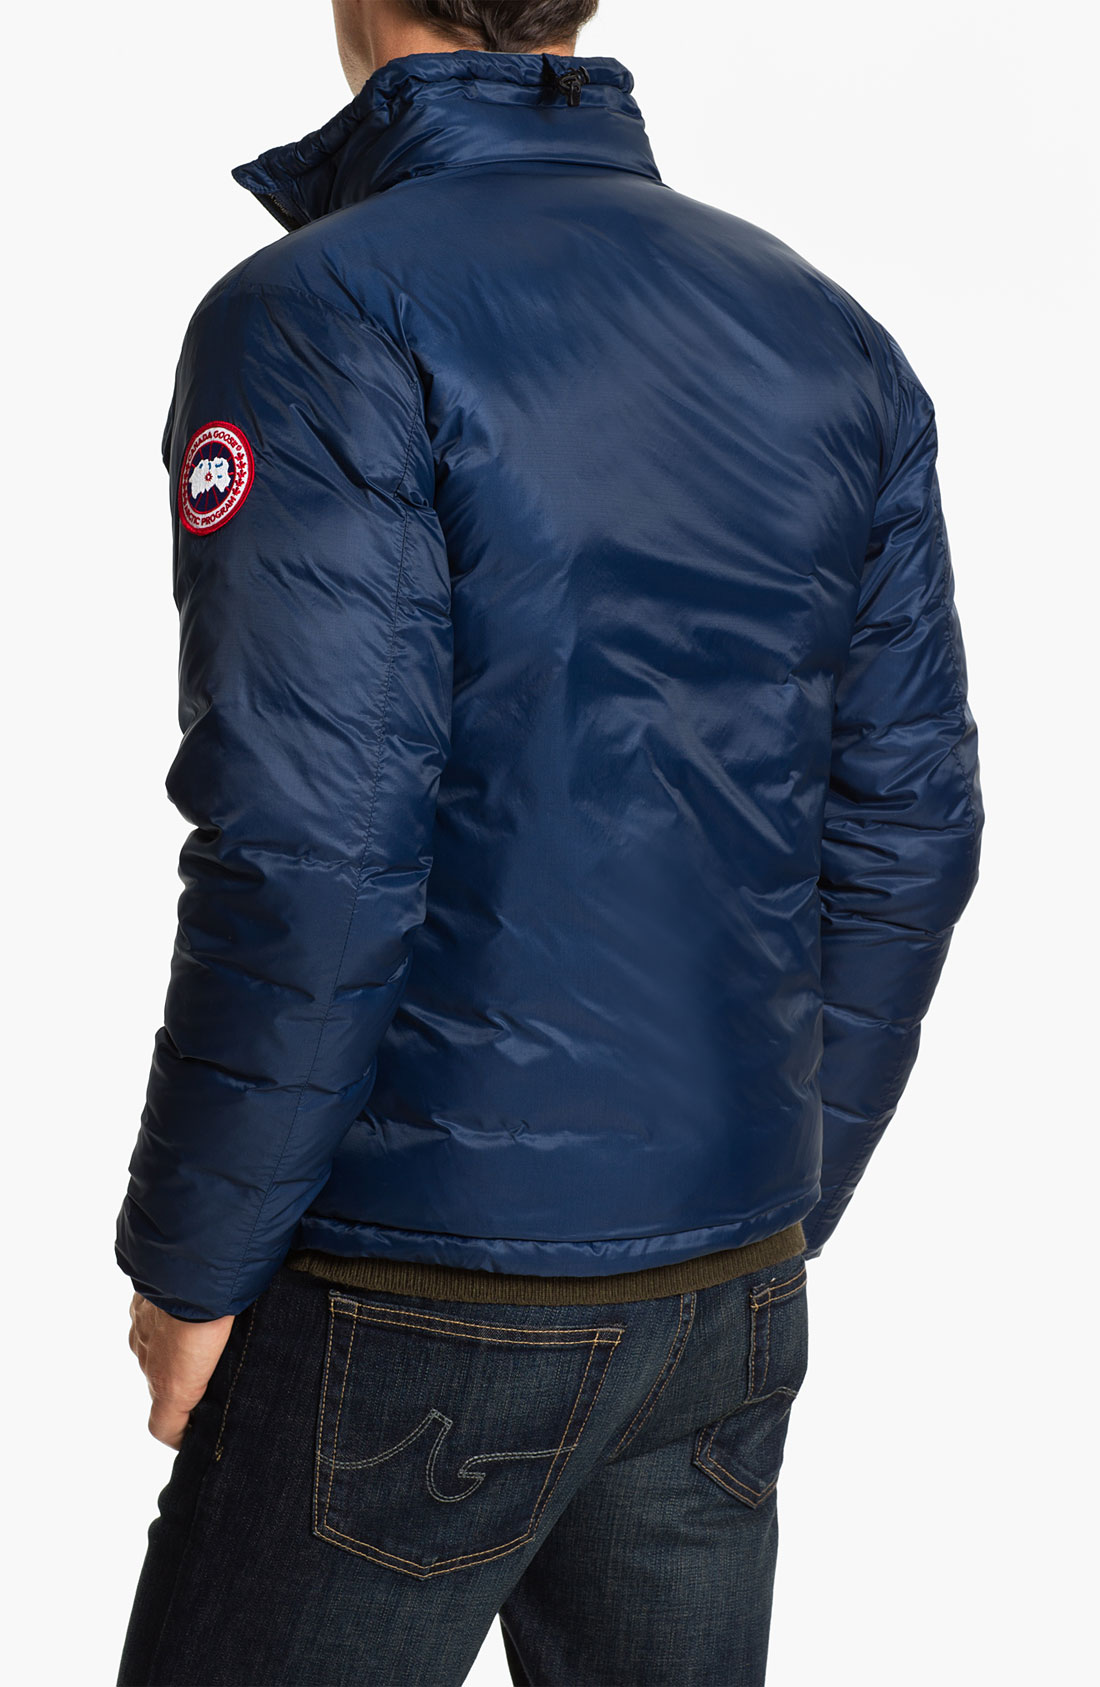 lodge down jacket canada goose canada goose jackets sale. Black Bedroom Furniture Sets. Home Design Ideas